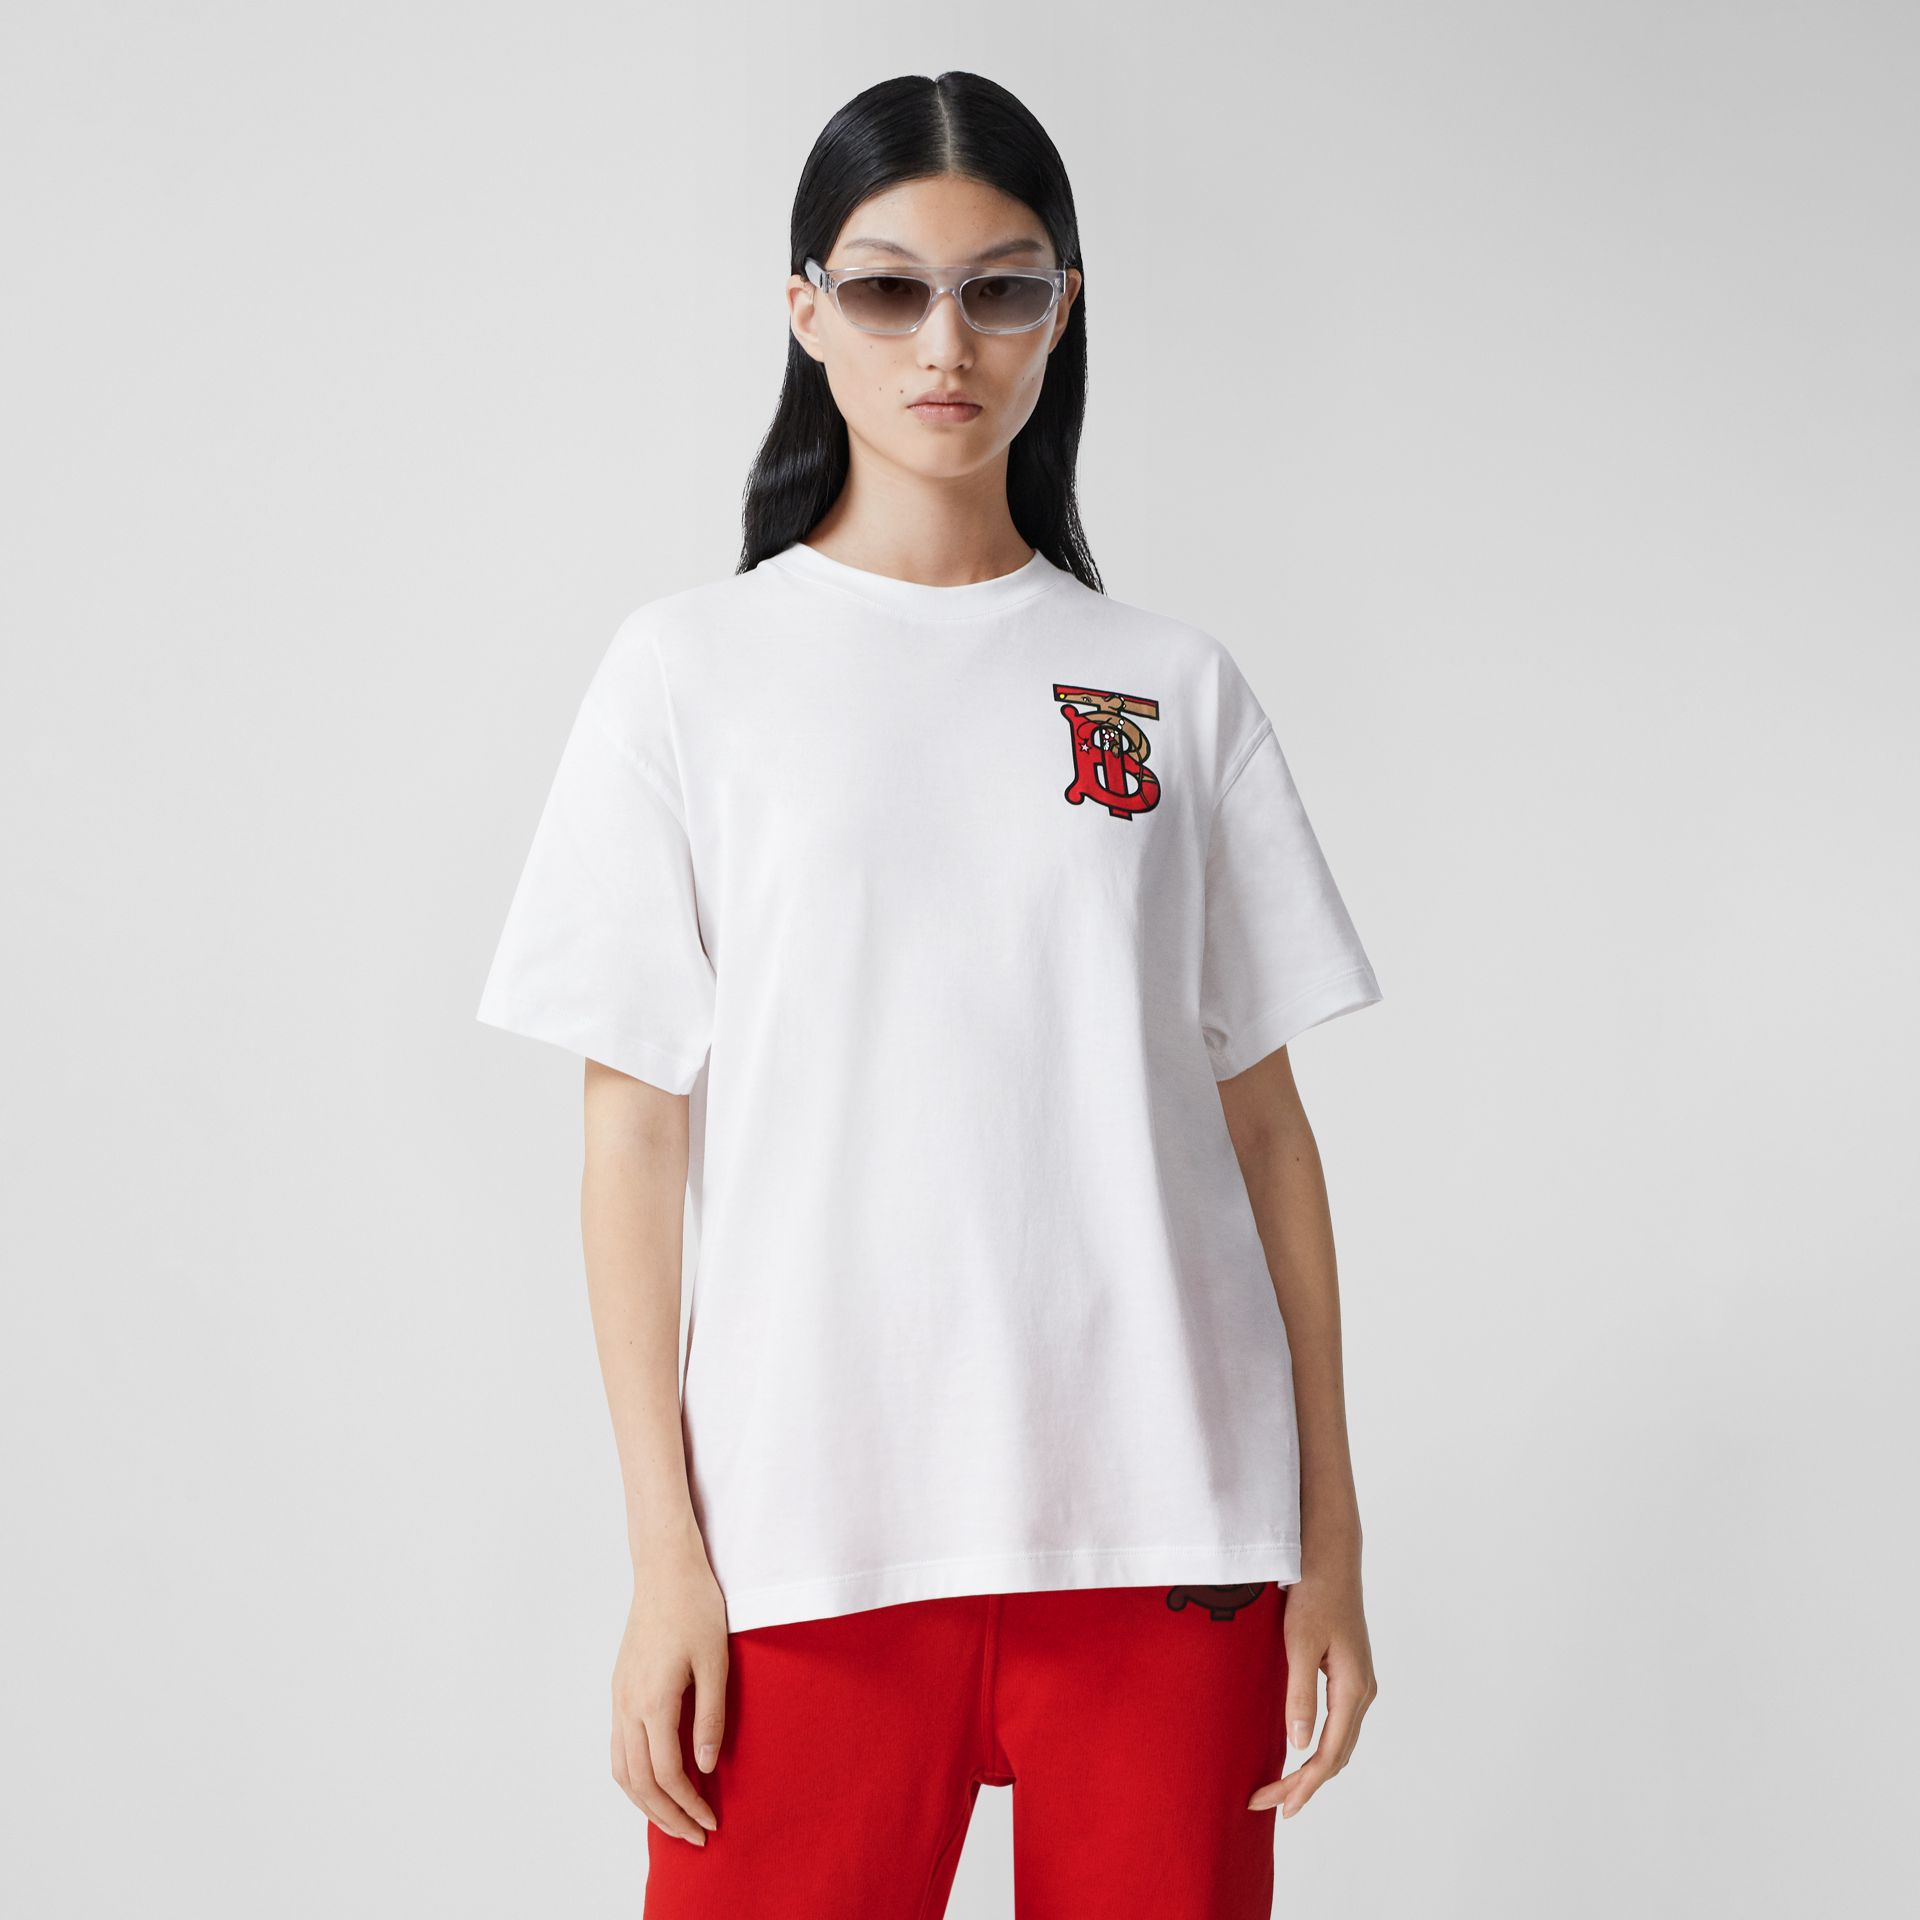 Monogram Motif Cotton Oversized T-shirt in White - Women | Burberry United Kingdom - gallery image 4